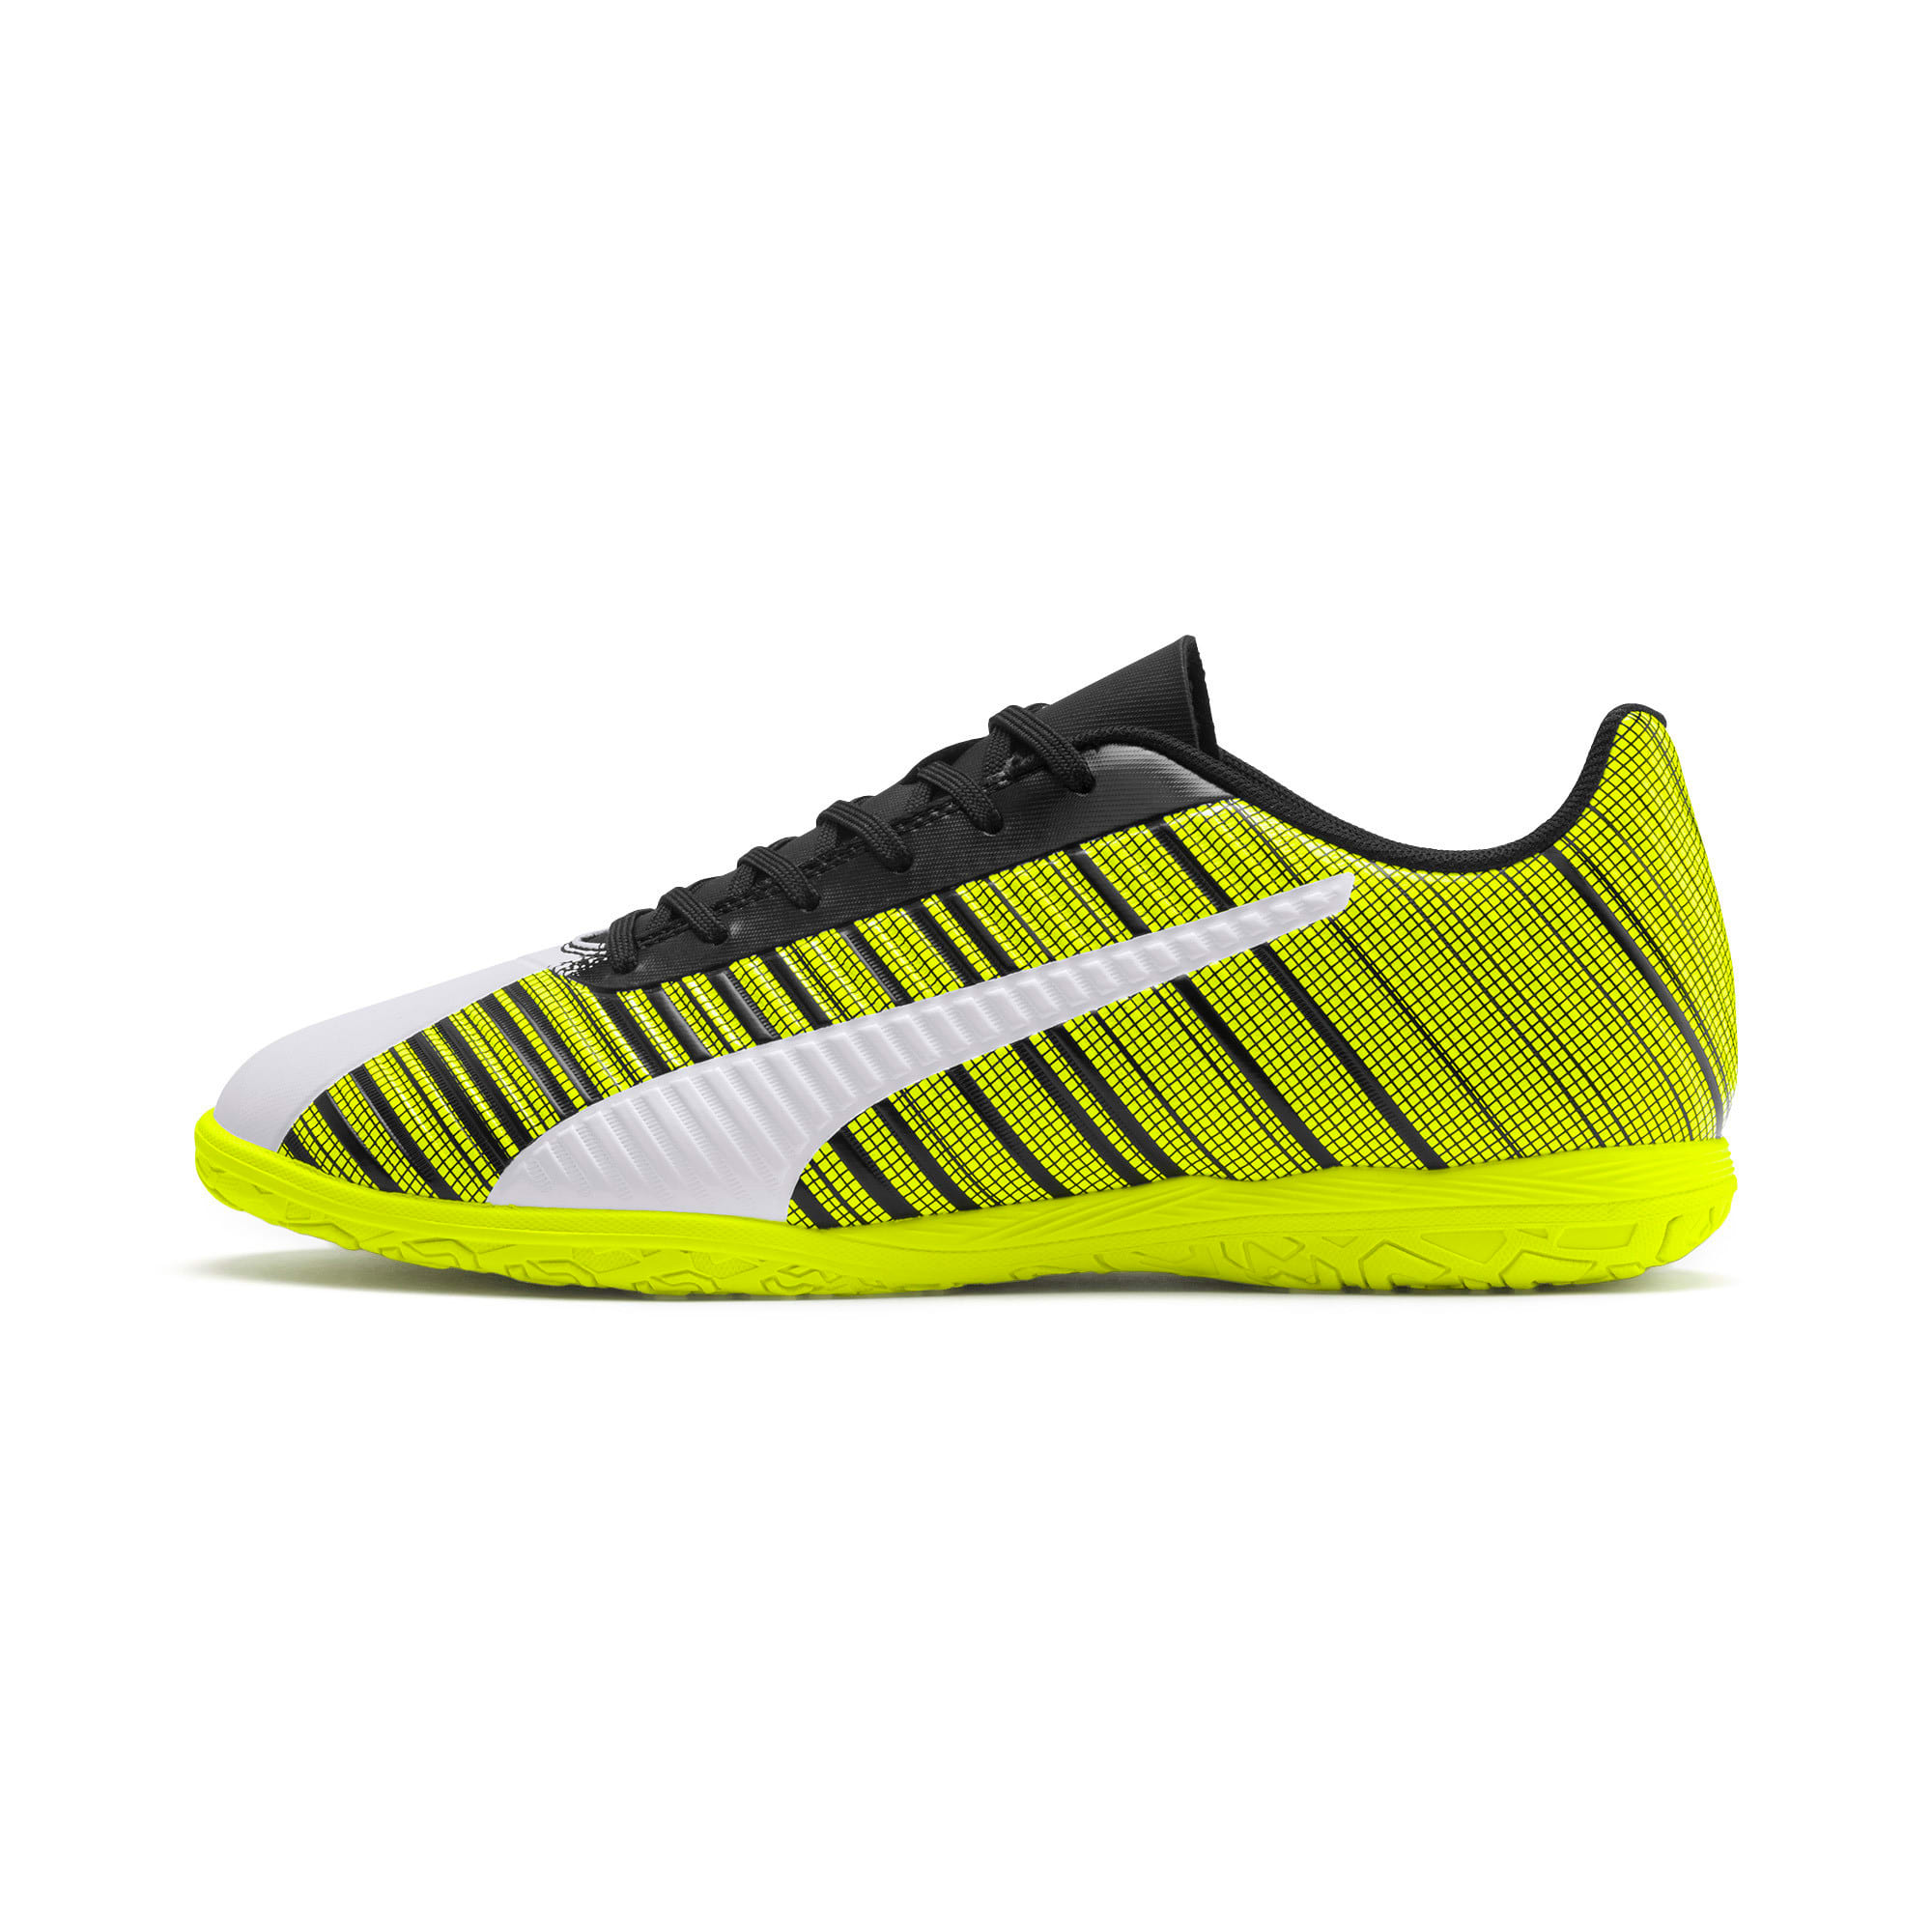 Thumbnail 1 of PUMA ONE 5.4 IT Men's Football Boots, White-Black-Yellow Alert, medium